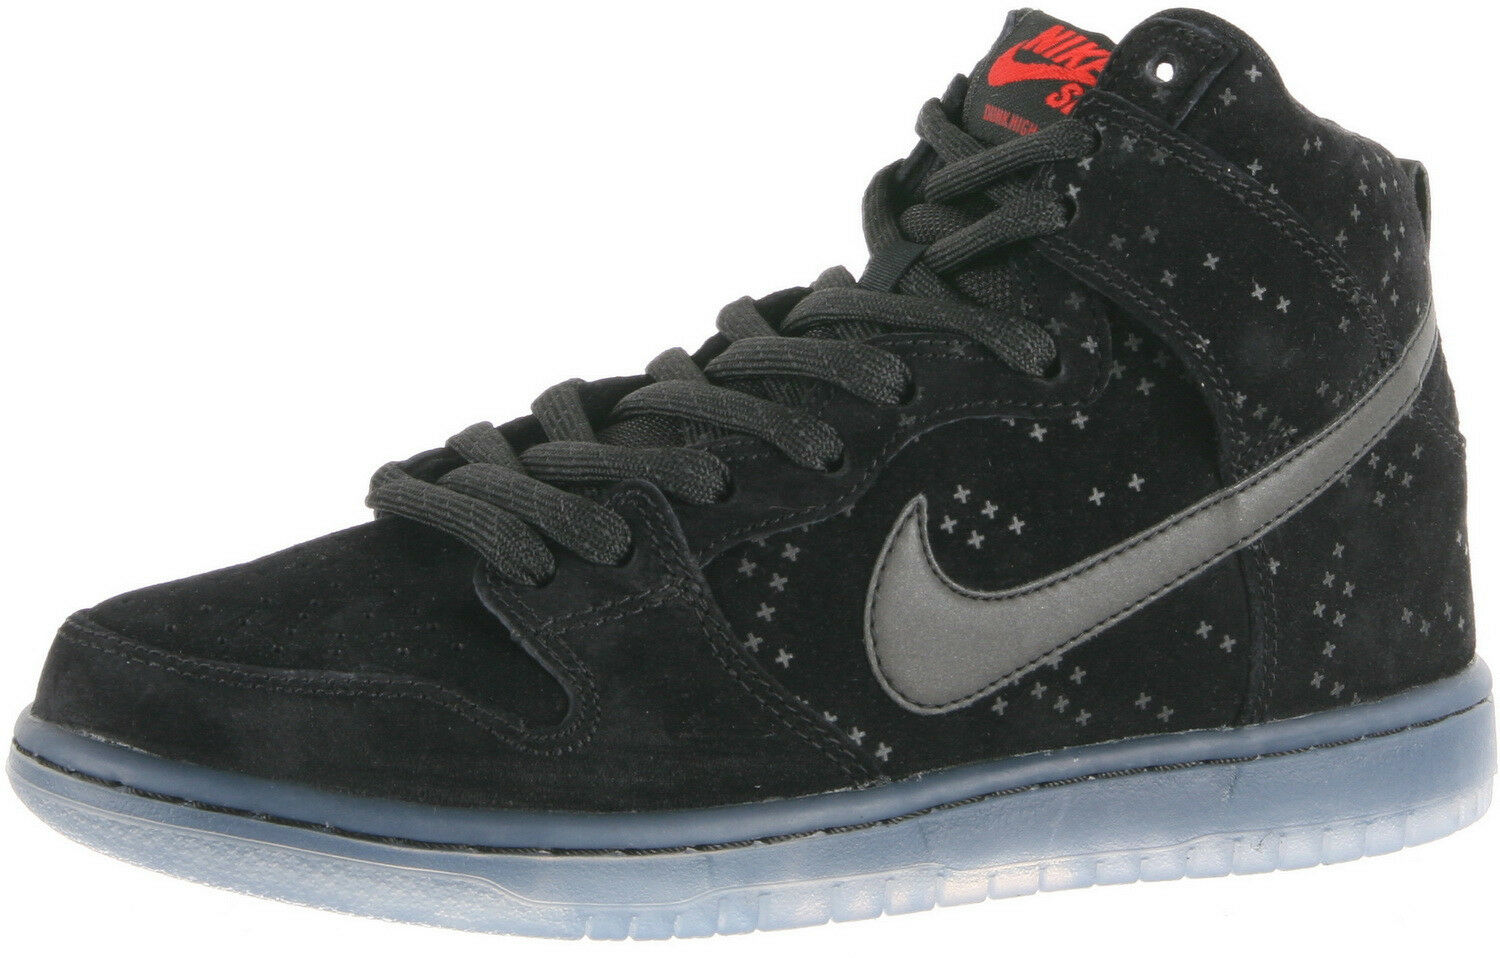 Nike DUNK HIGH PREM FLASH SB Black Black-Clear 806333-001 Price reduction Men's Shoes  New shoes for men and women, limited time discount